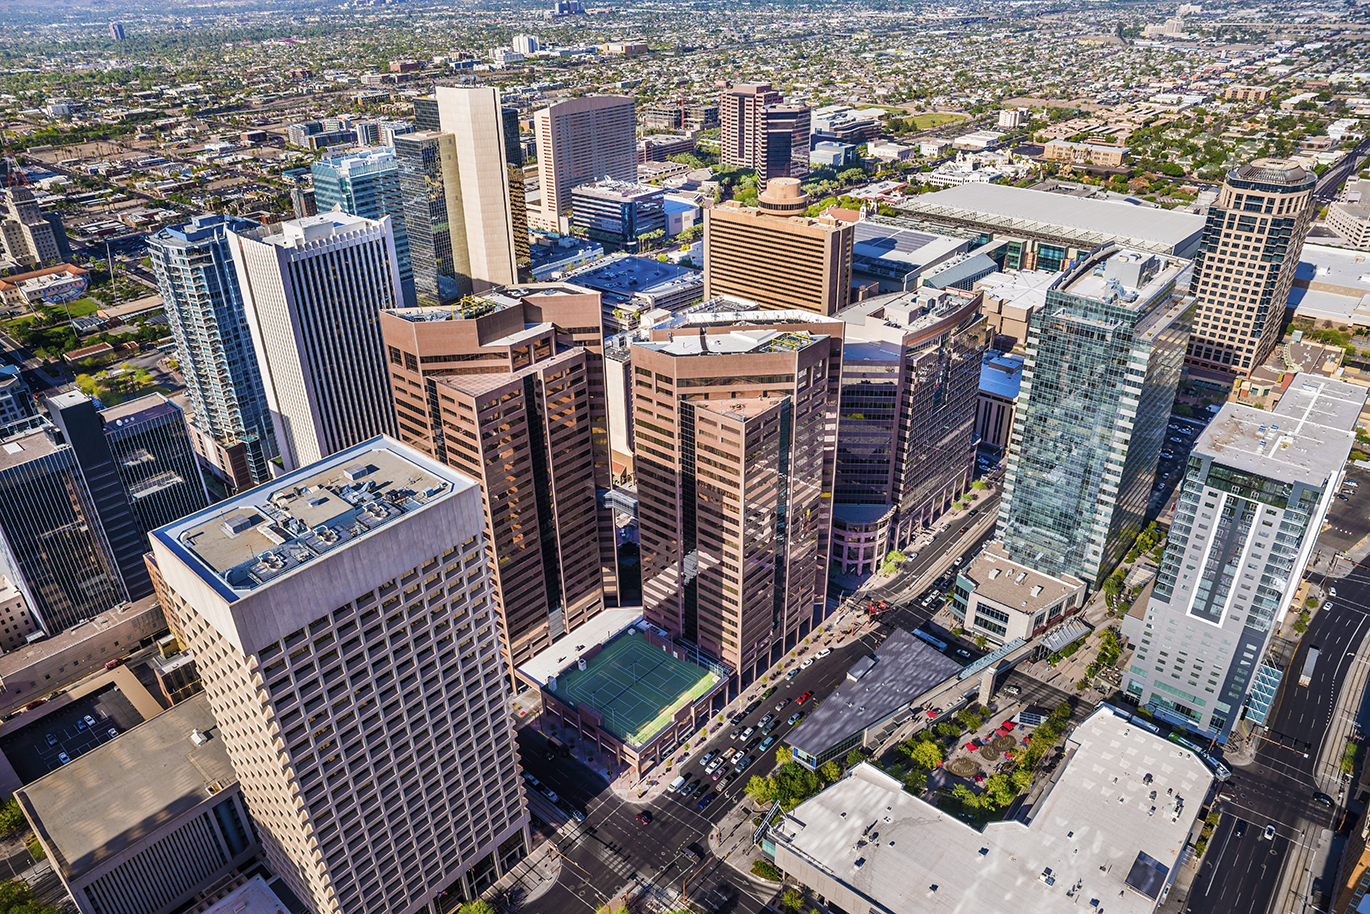 Phoenix-Arizona-downtown-cityscape-skyline-aerial-view-of-skyscrapers-000039872794_Full